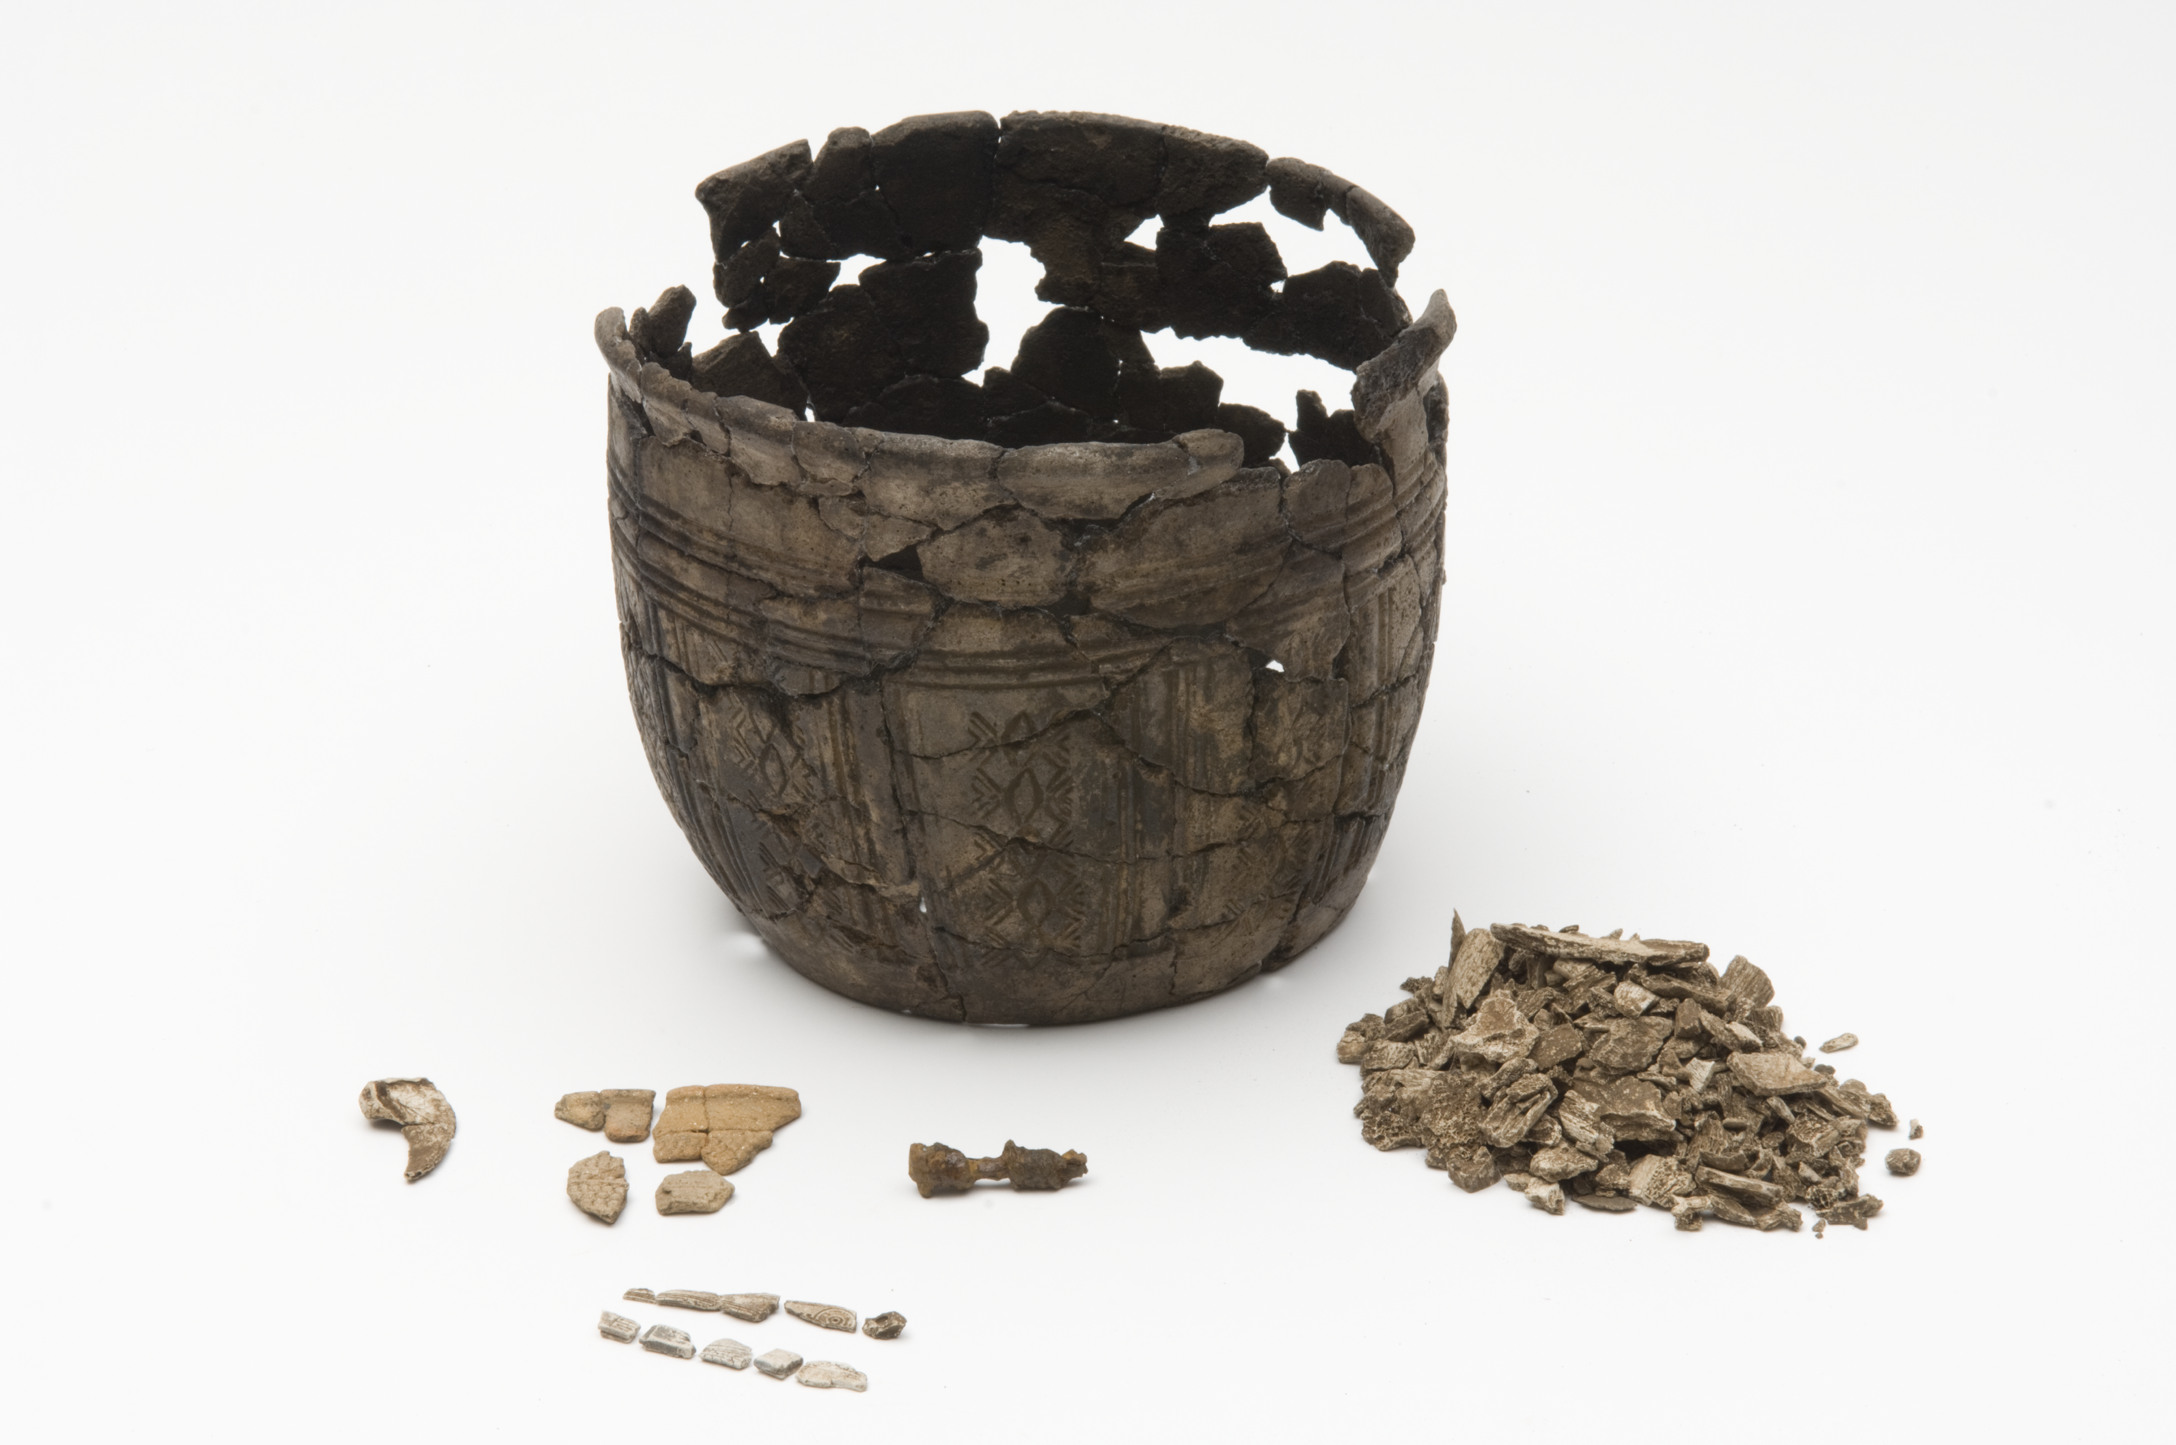 Migration period funerary urn, Sørbø, Rogaland, Norway. Note the small amount of burnt bones to the right. Credits: Arkeologisk Museum i Stavanger